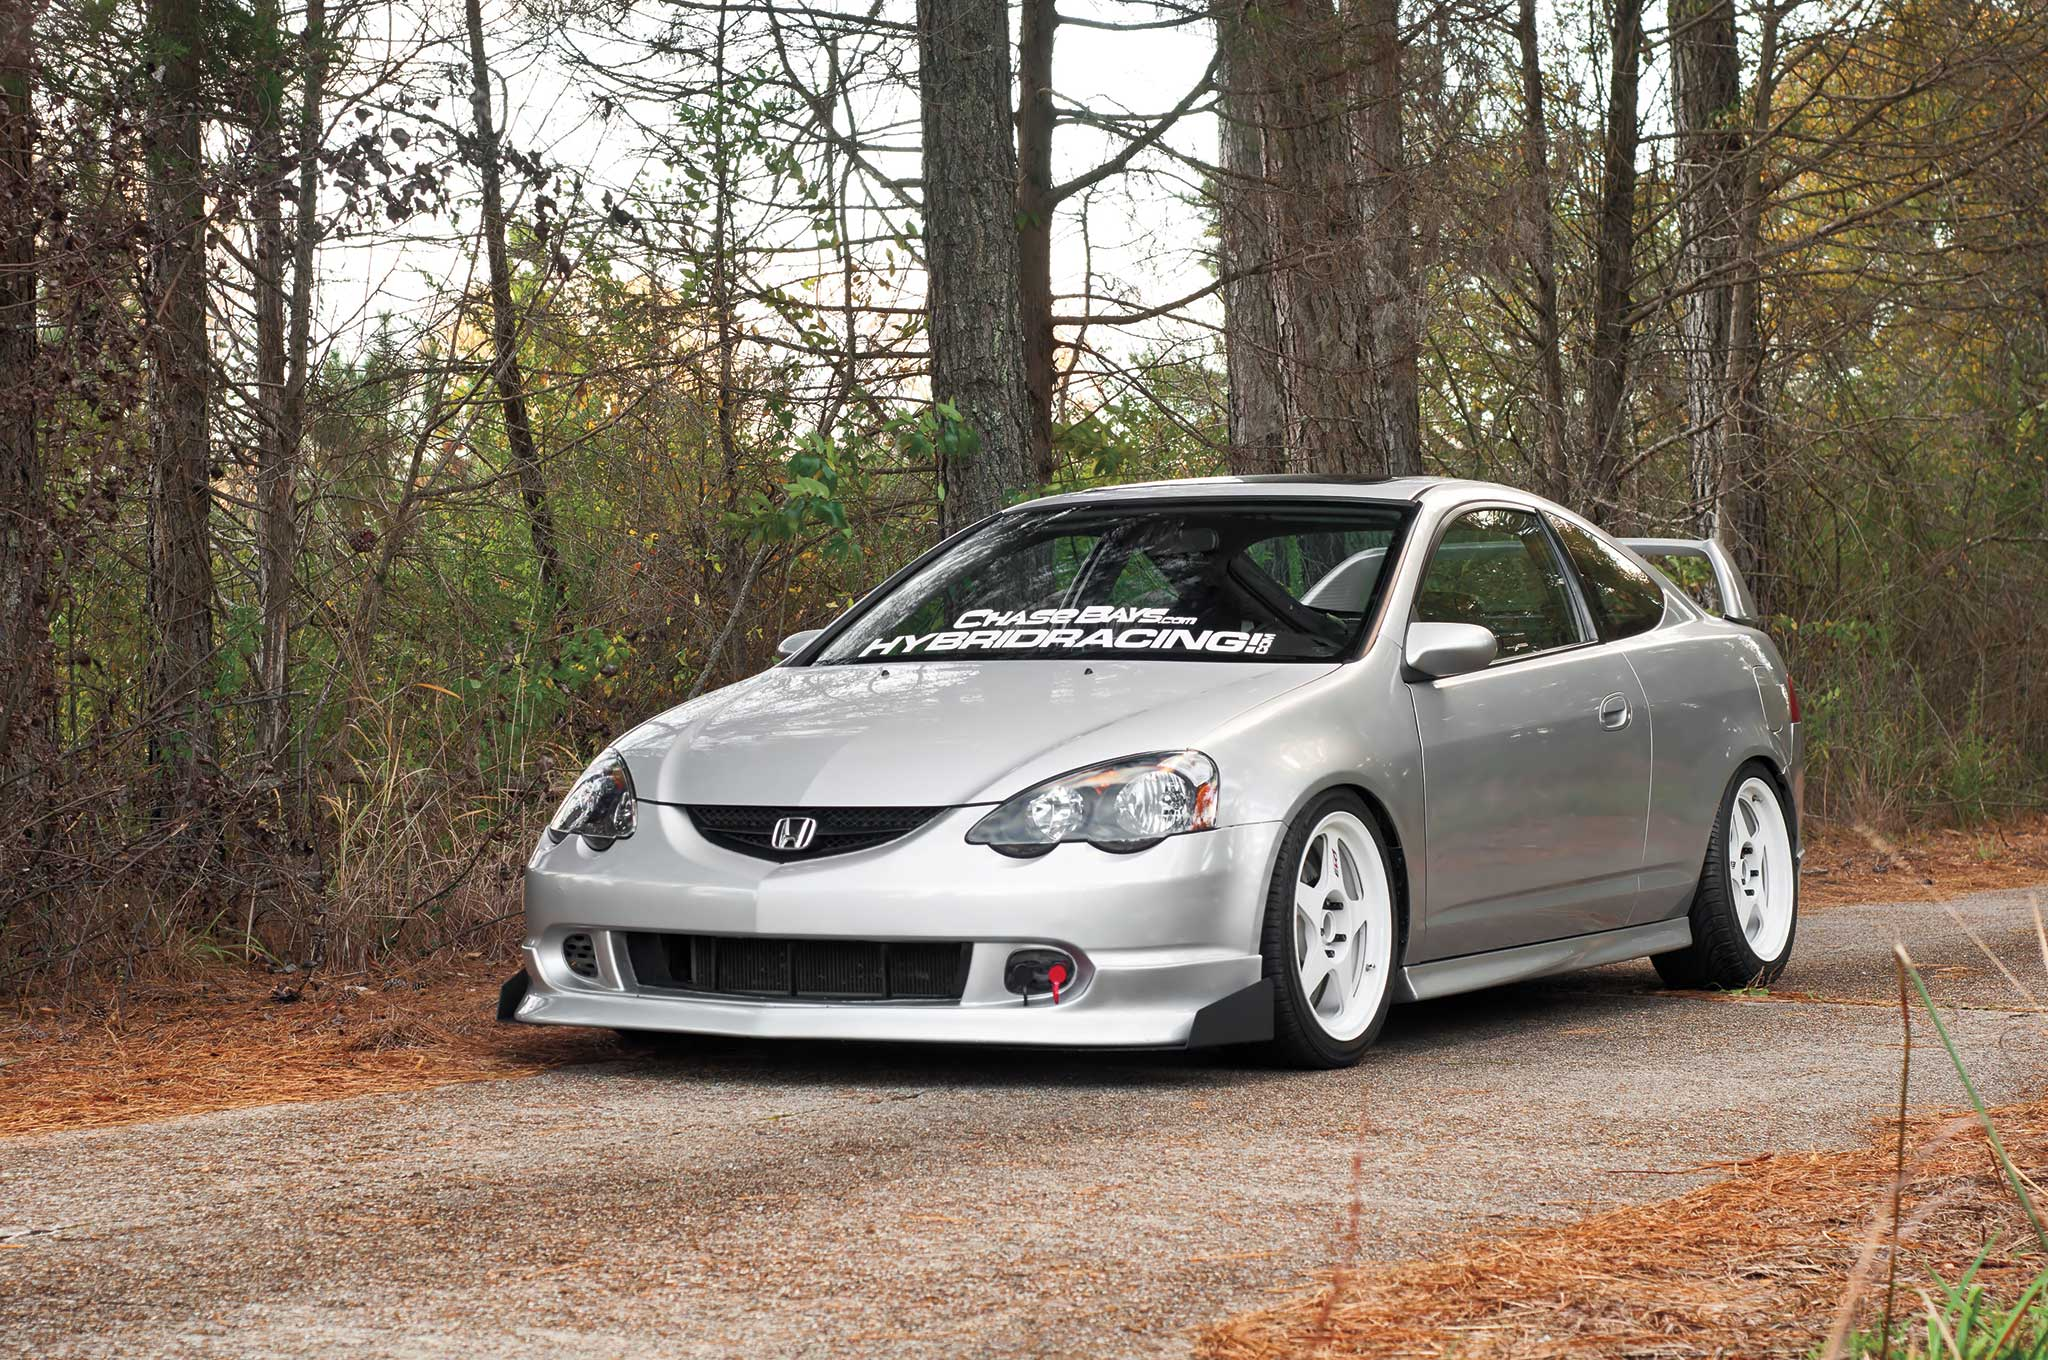 Best Tuner Cars >> 10 Great Tuner Cars Under 10k Photo Image Gallery